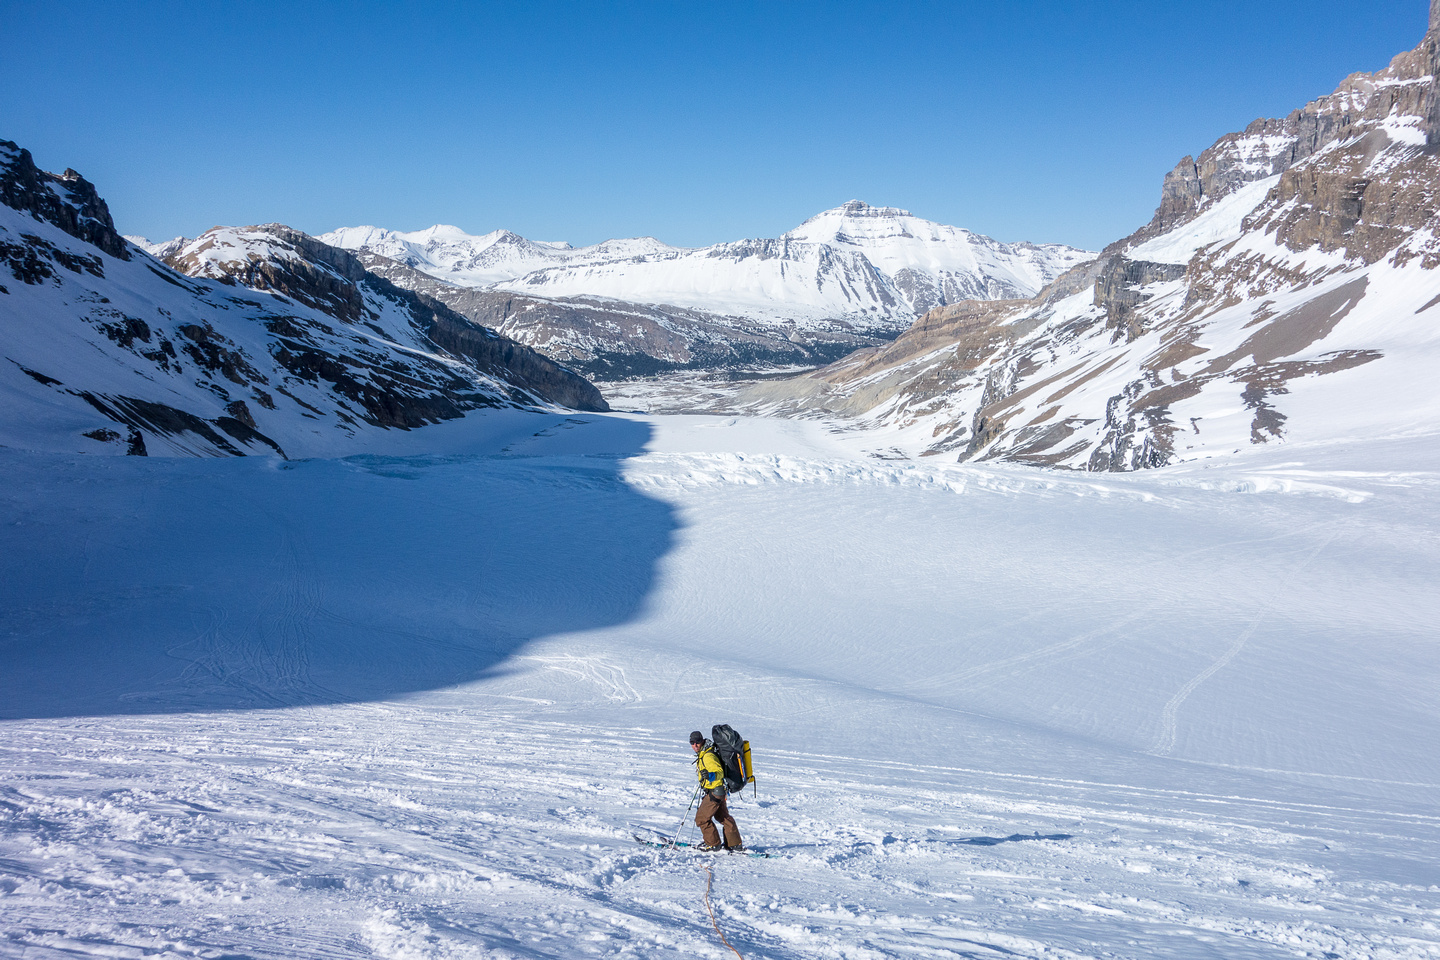 Skiing down, roped, is a PITA but it's necessary when the conditions are thin or dicey.